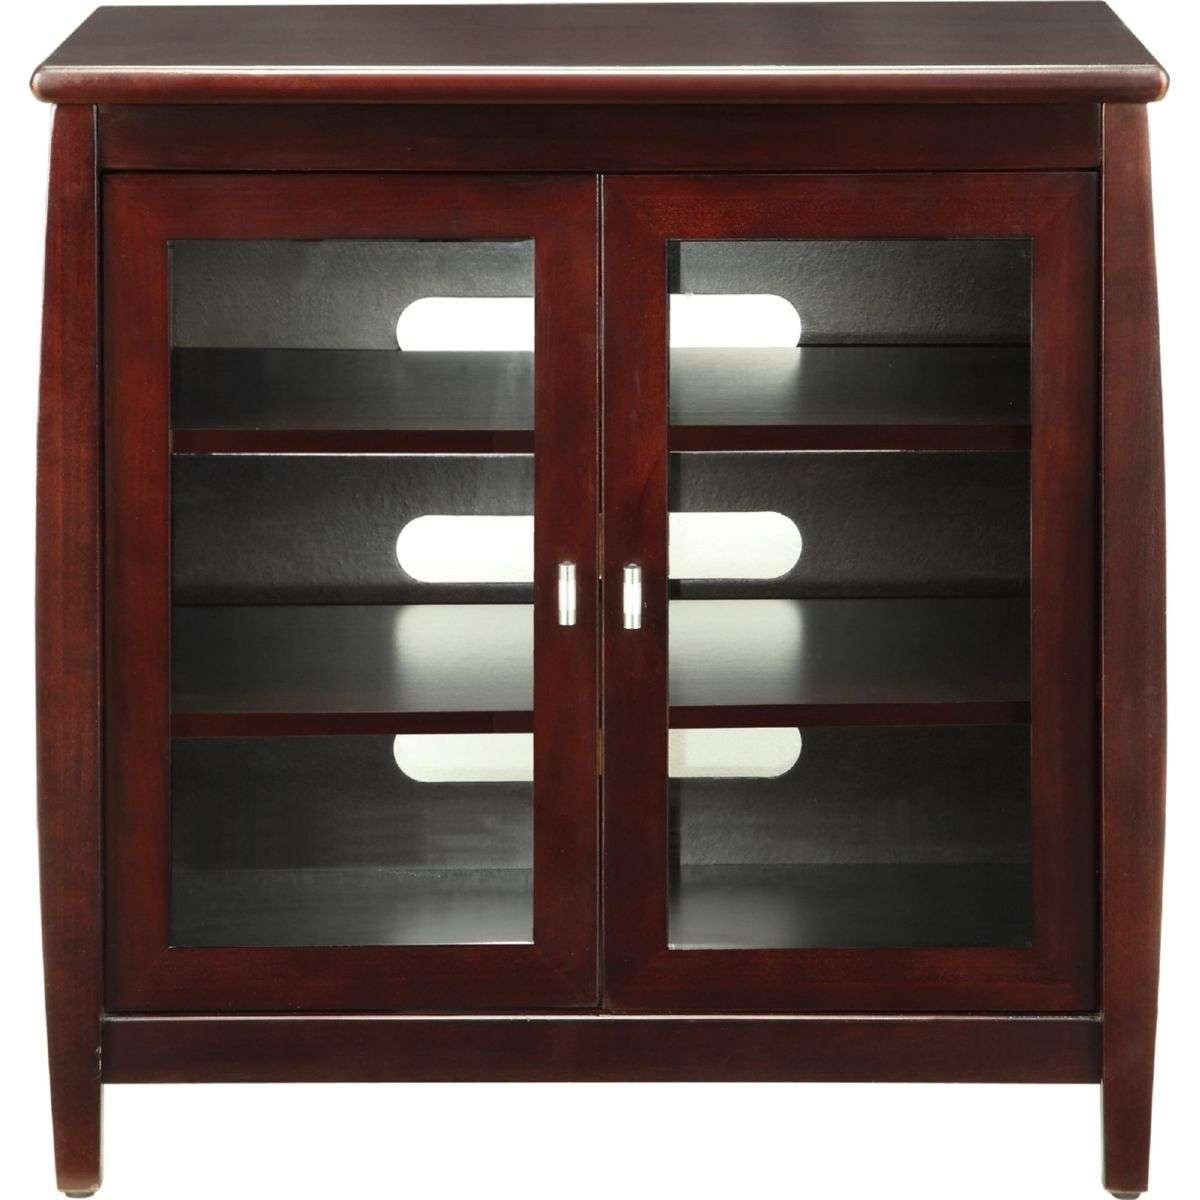 Tv Television Stands 31 To 40 Inches Wide At Dynamic Home Decor Throughout Tv Stands 40 Inches Wide (View 15 of 15)